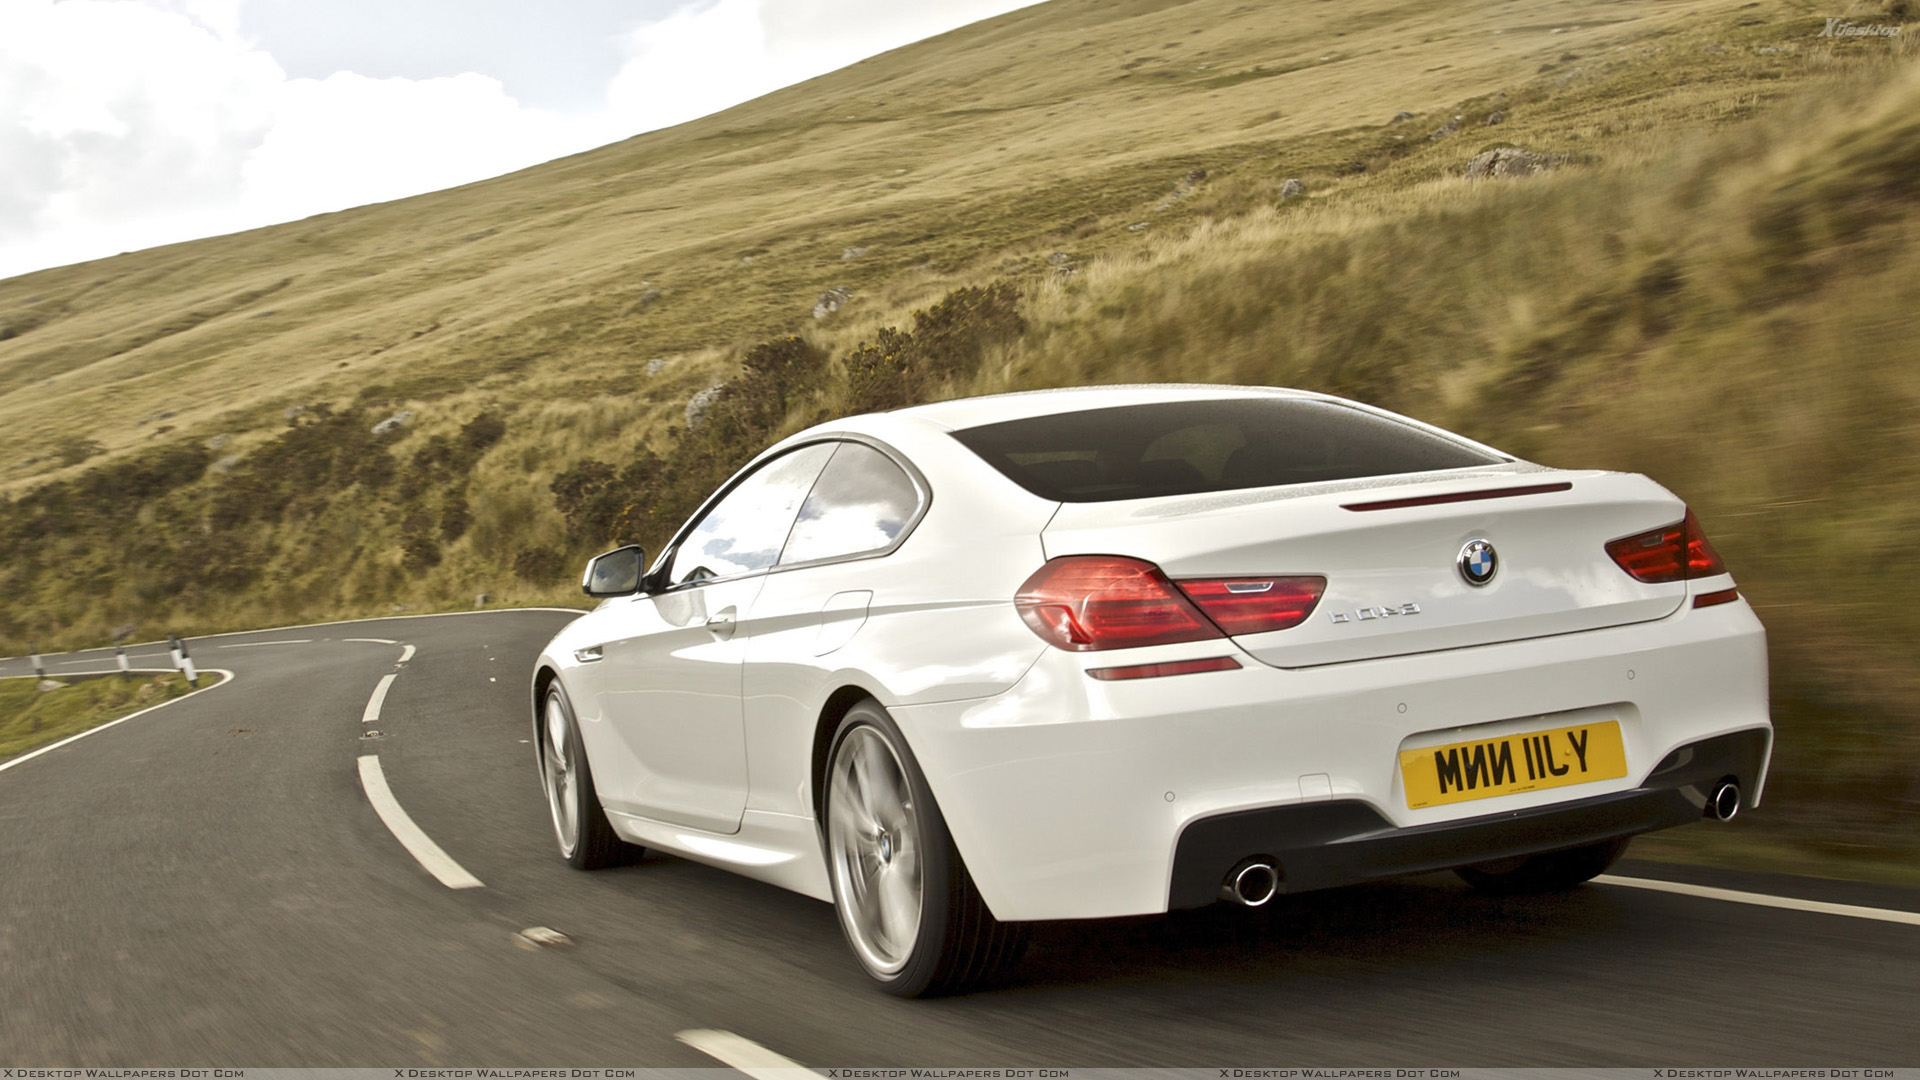 Back Pose Of 2012 BMW 6 Series Coupe in White Wallpaper